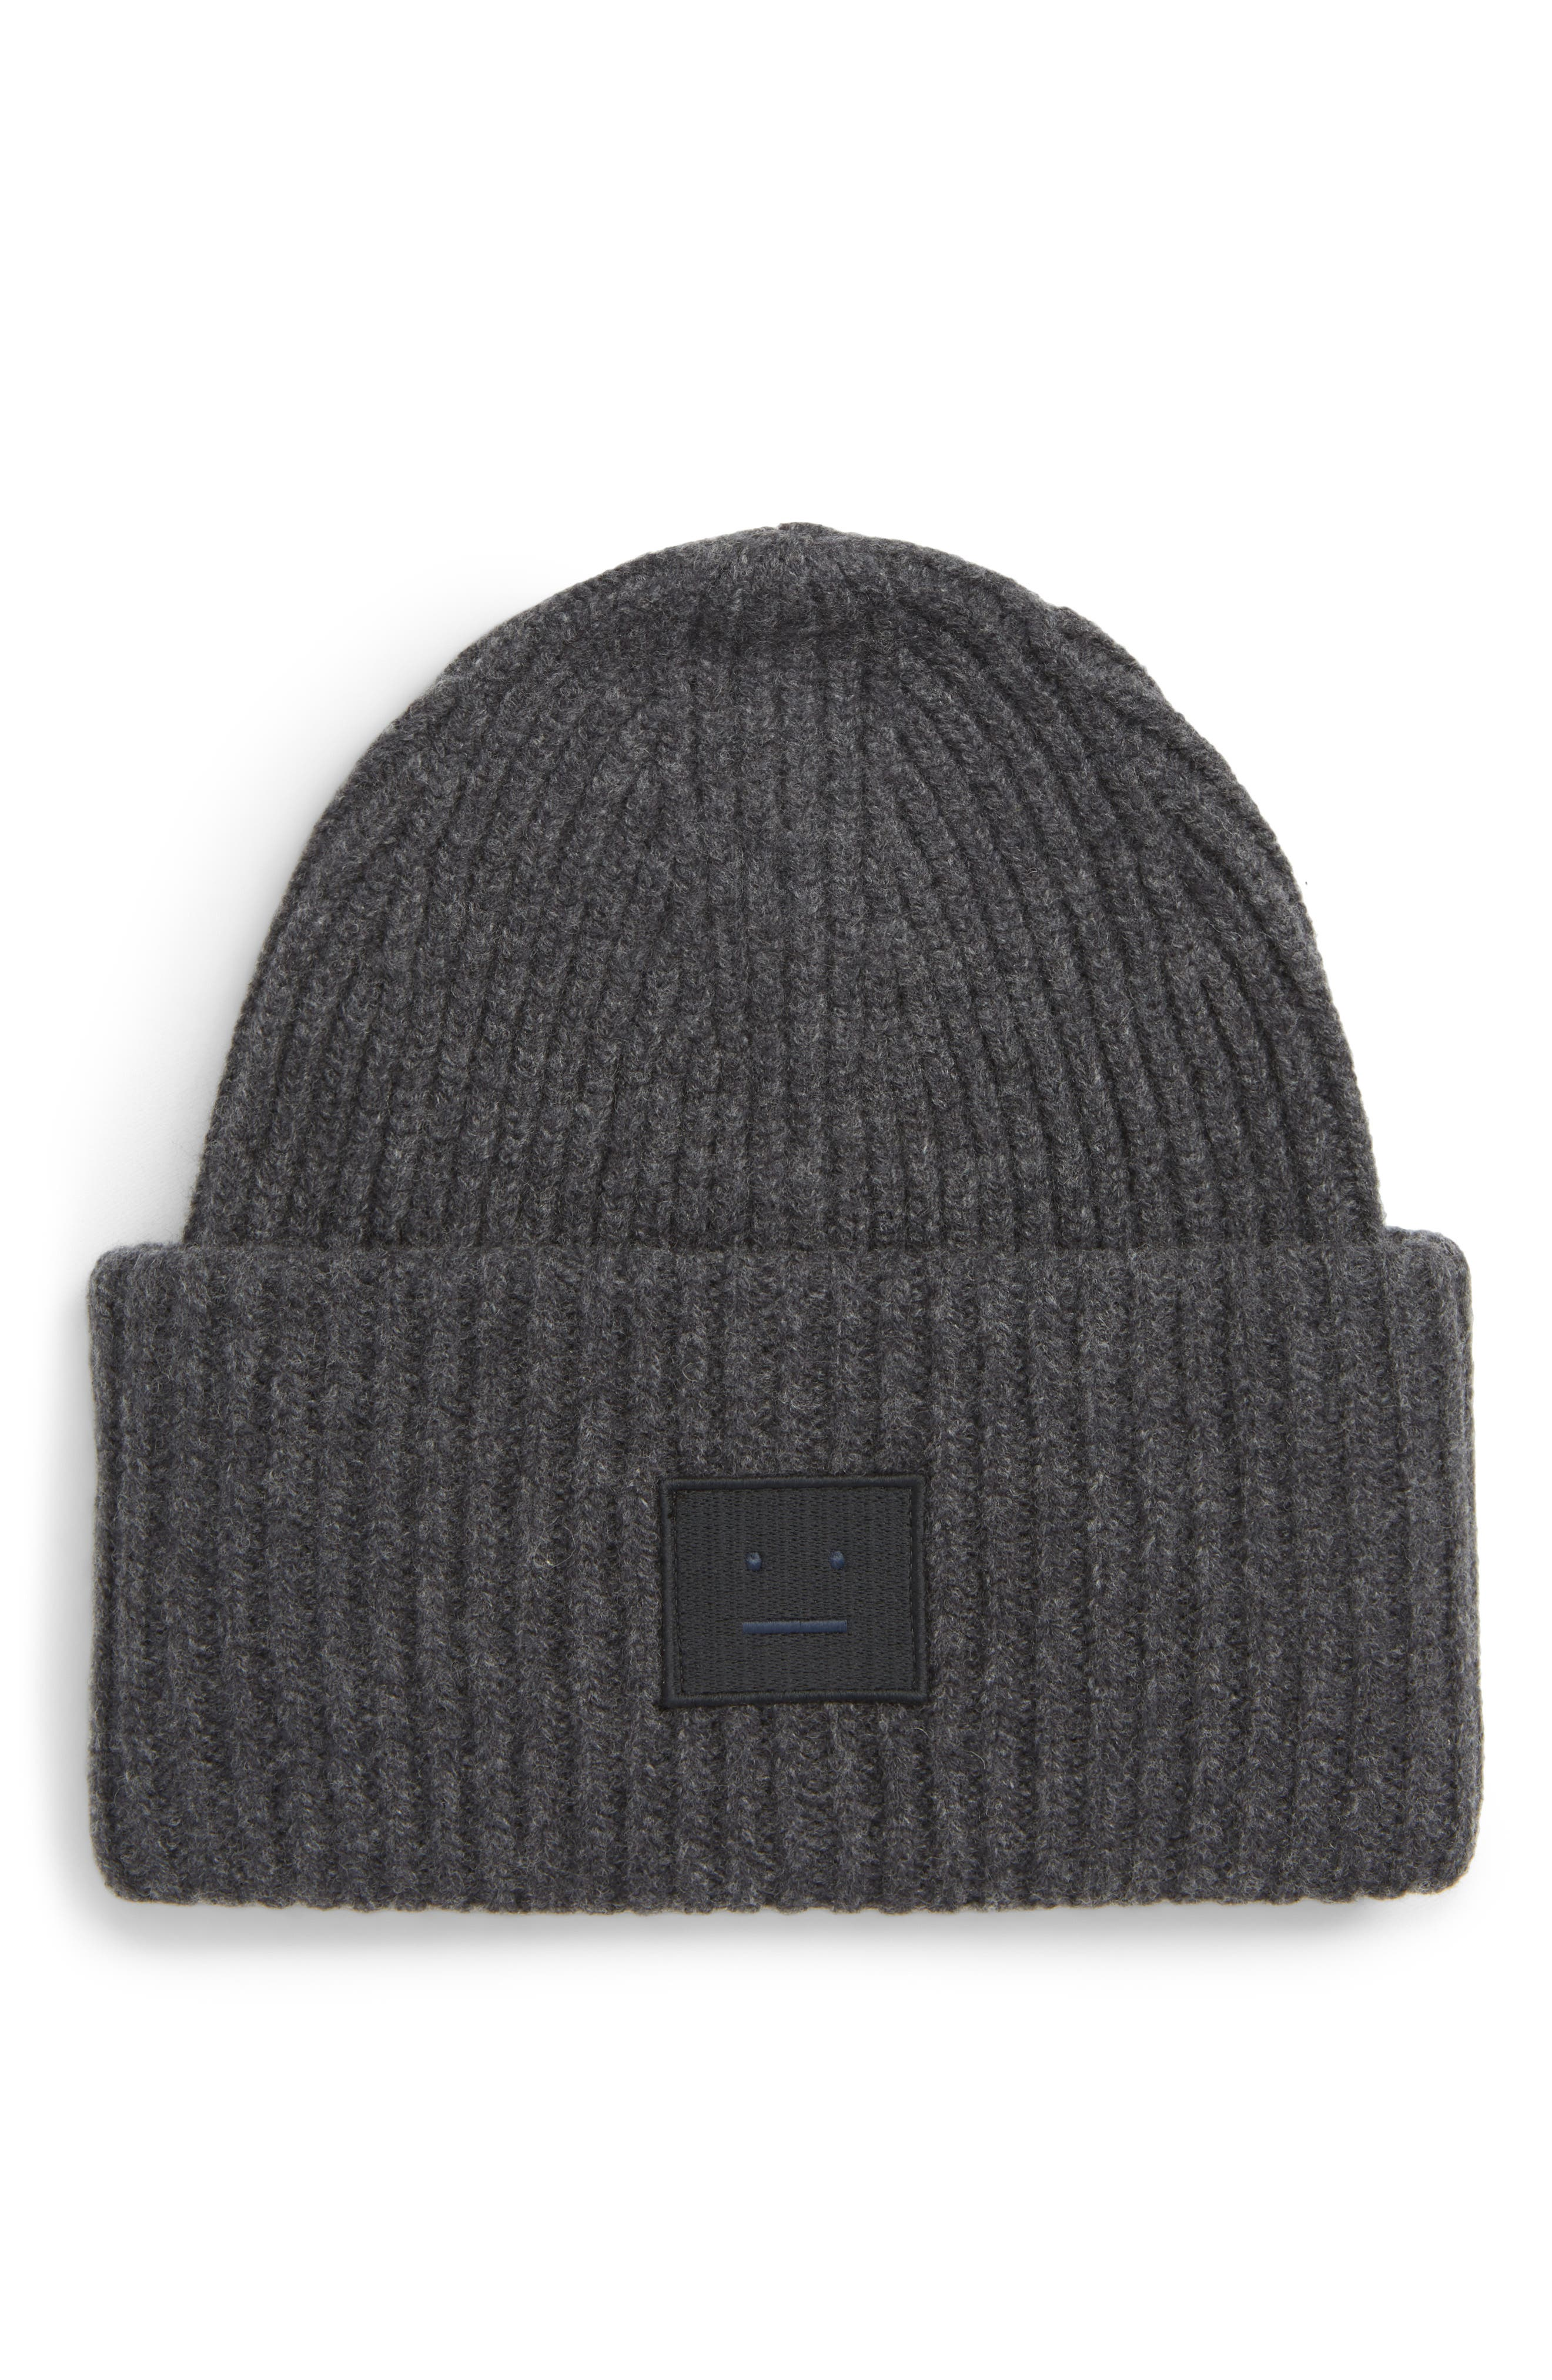 ACNE STUDIOS Pansy Rib Knit Beanie, Main, color, CHARCOAL MELANGE